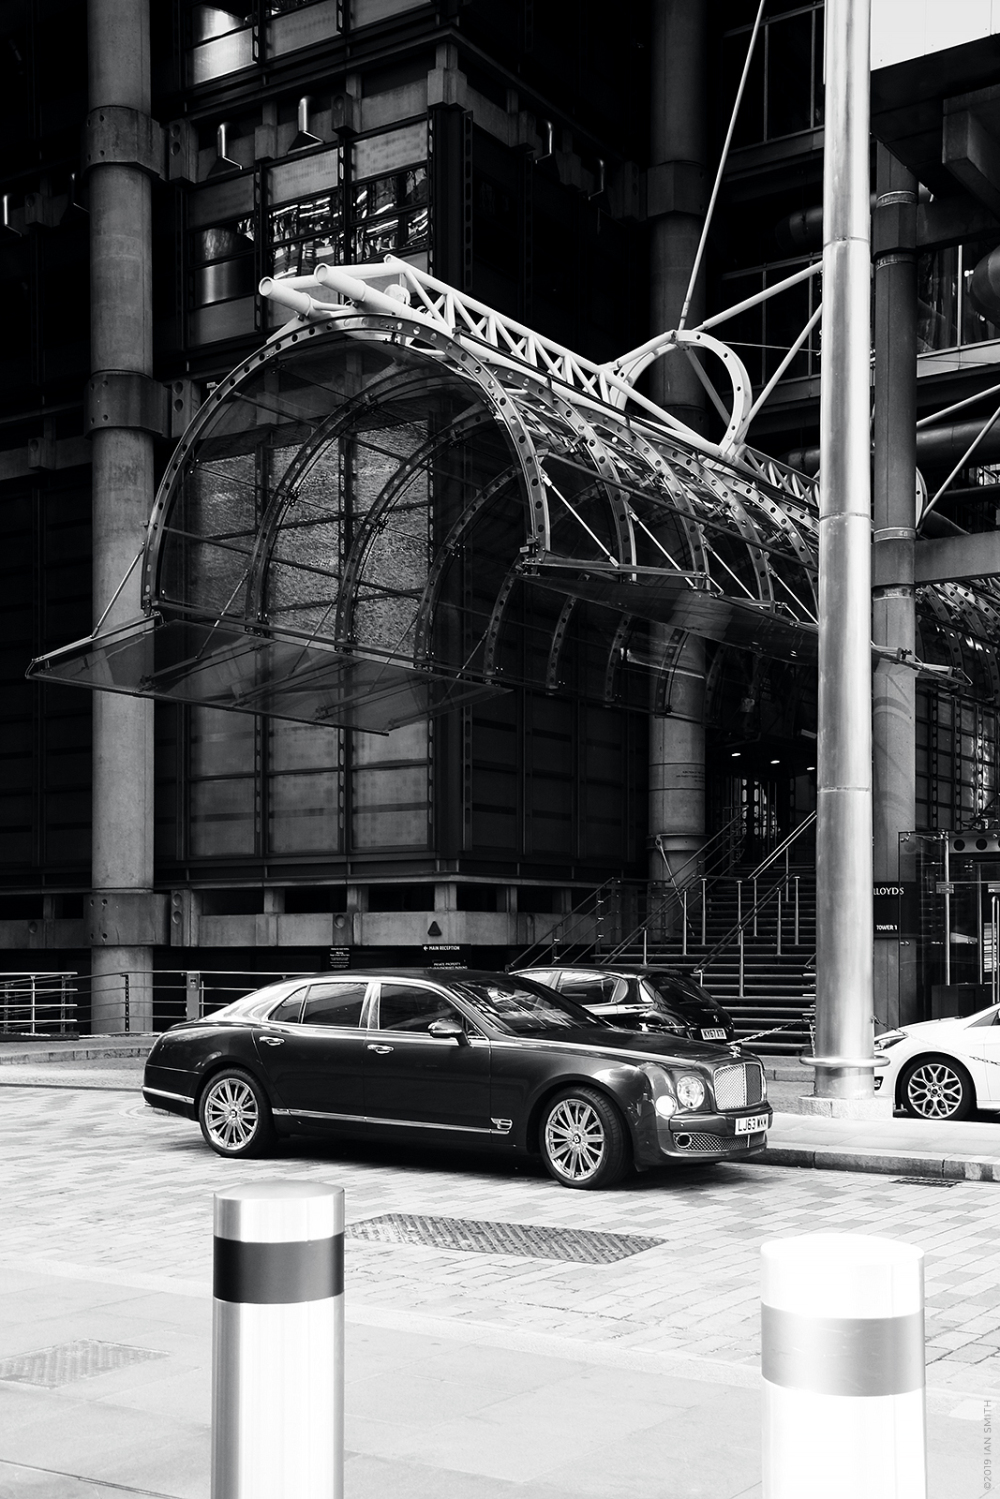 Bentley outside Lloyds building, London